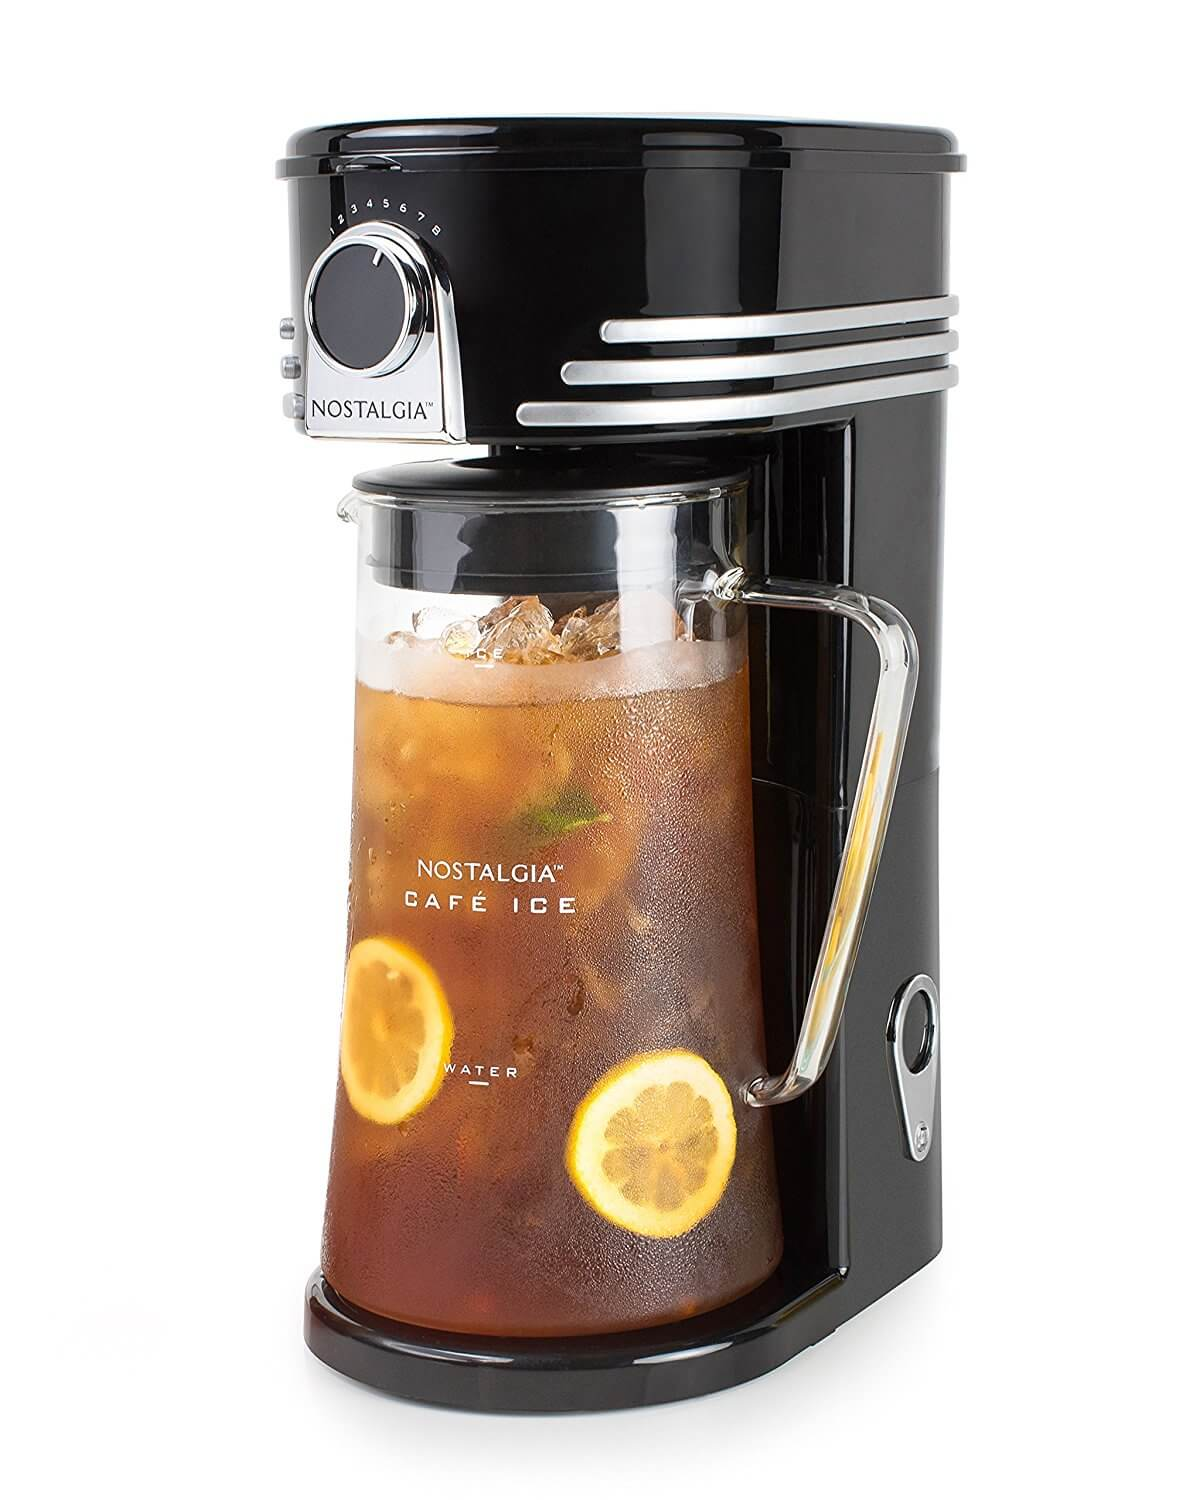 Nostalgia CI3BK Café Ice 3-Quart Iced Coffee & Tea Brewing System